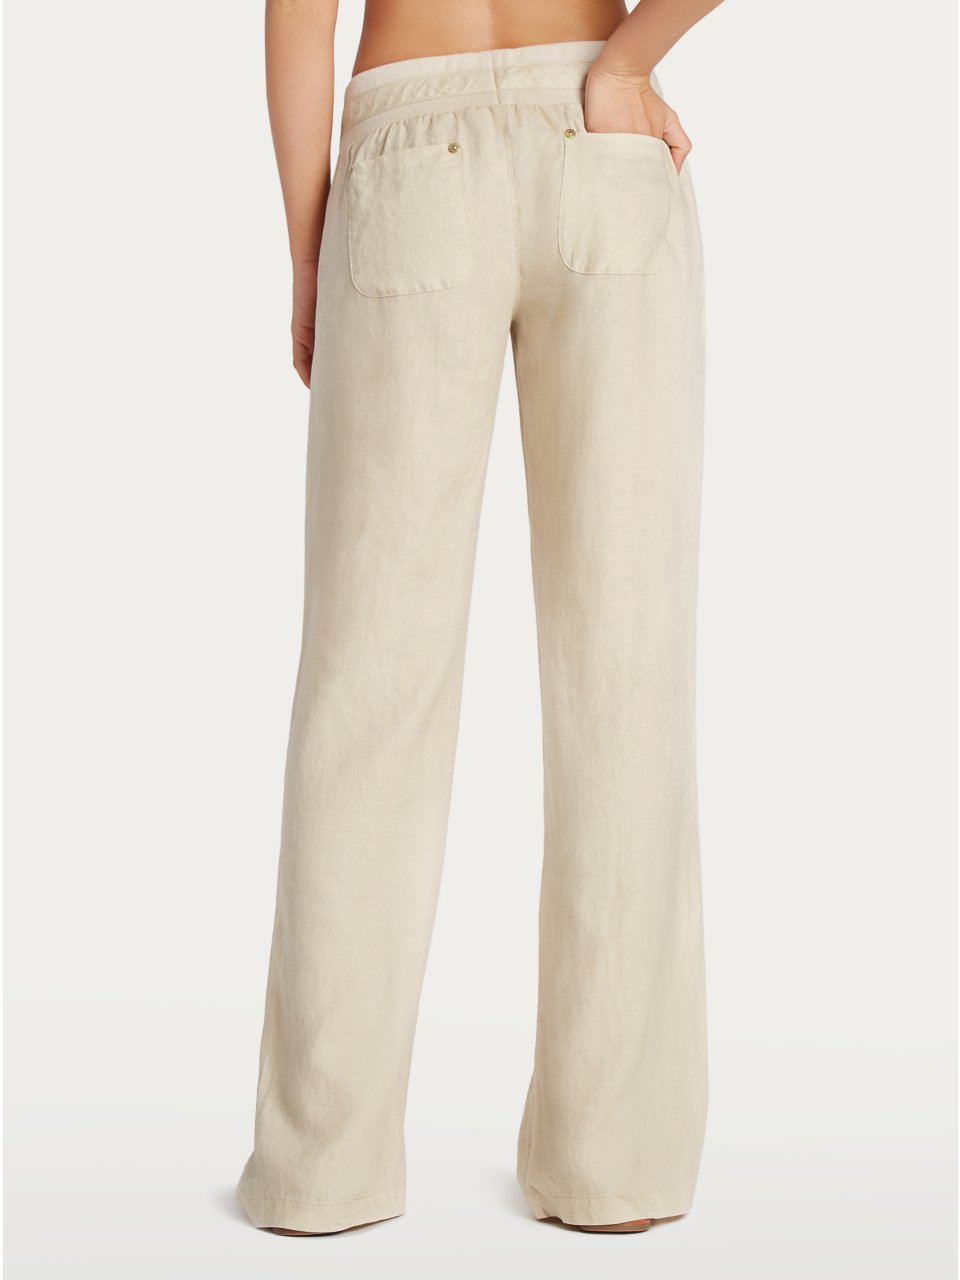 Excellent   WOMEN  Womens Clothing  Trousers  GUESS BY MARCIANO PANTS CAPRI